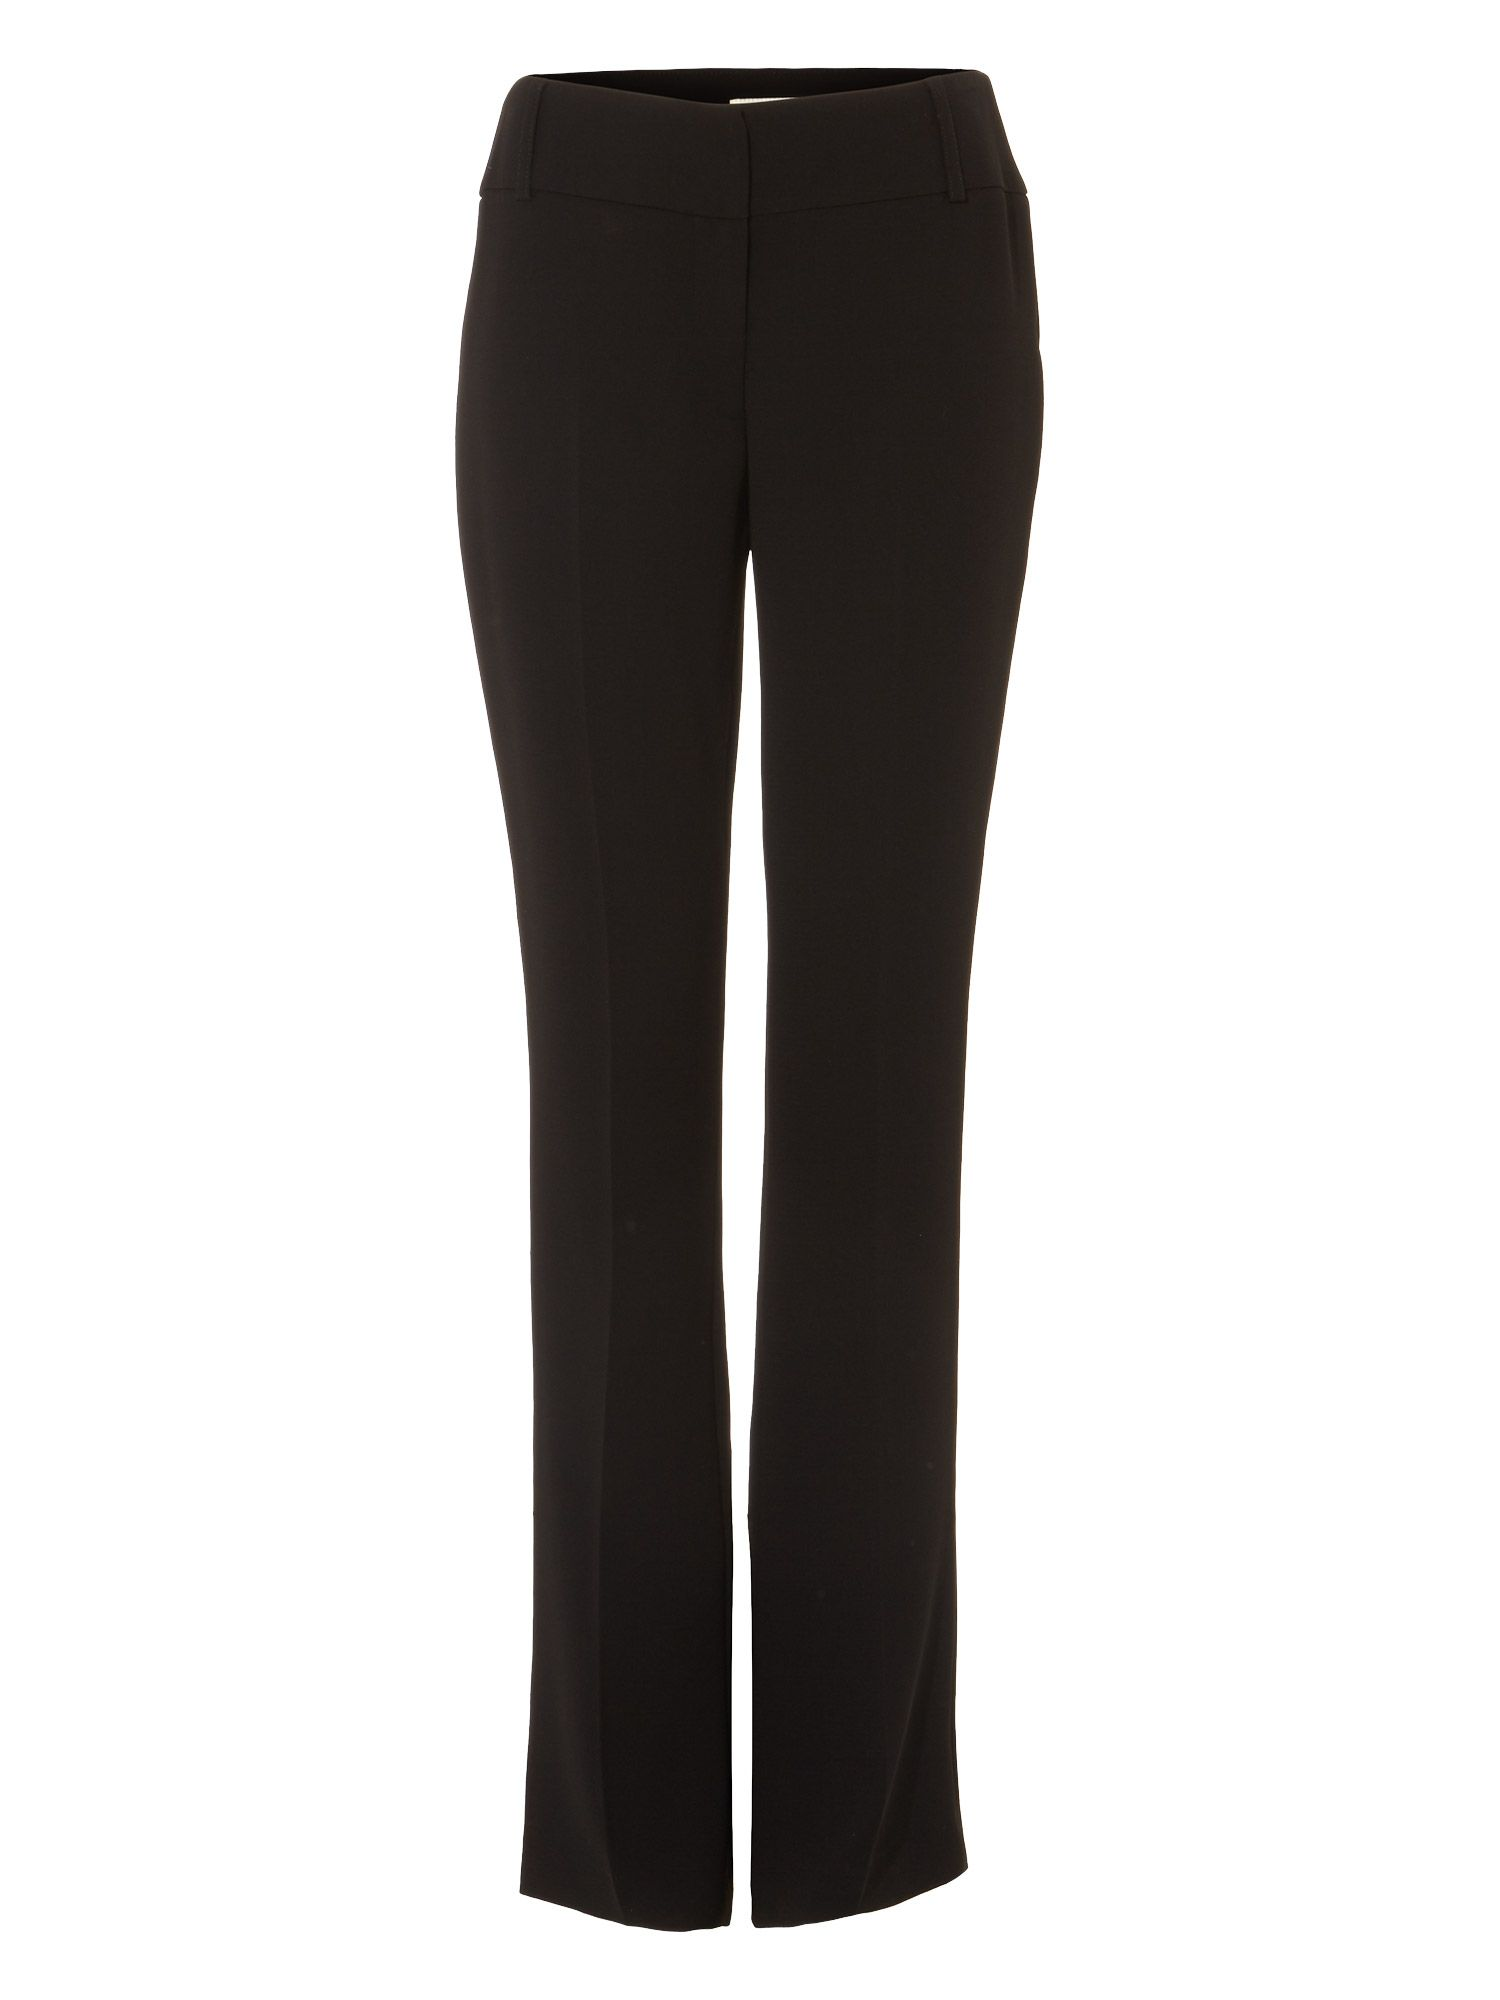 Damsel in a Dress City Suit Trousers, Black